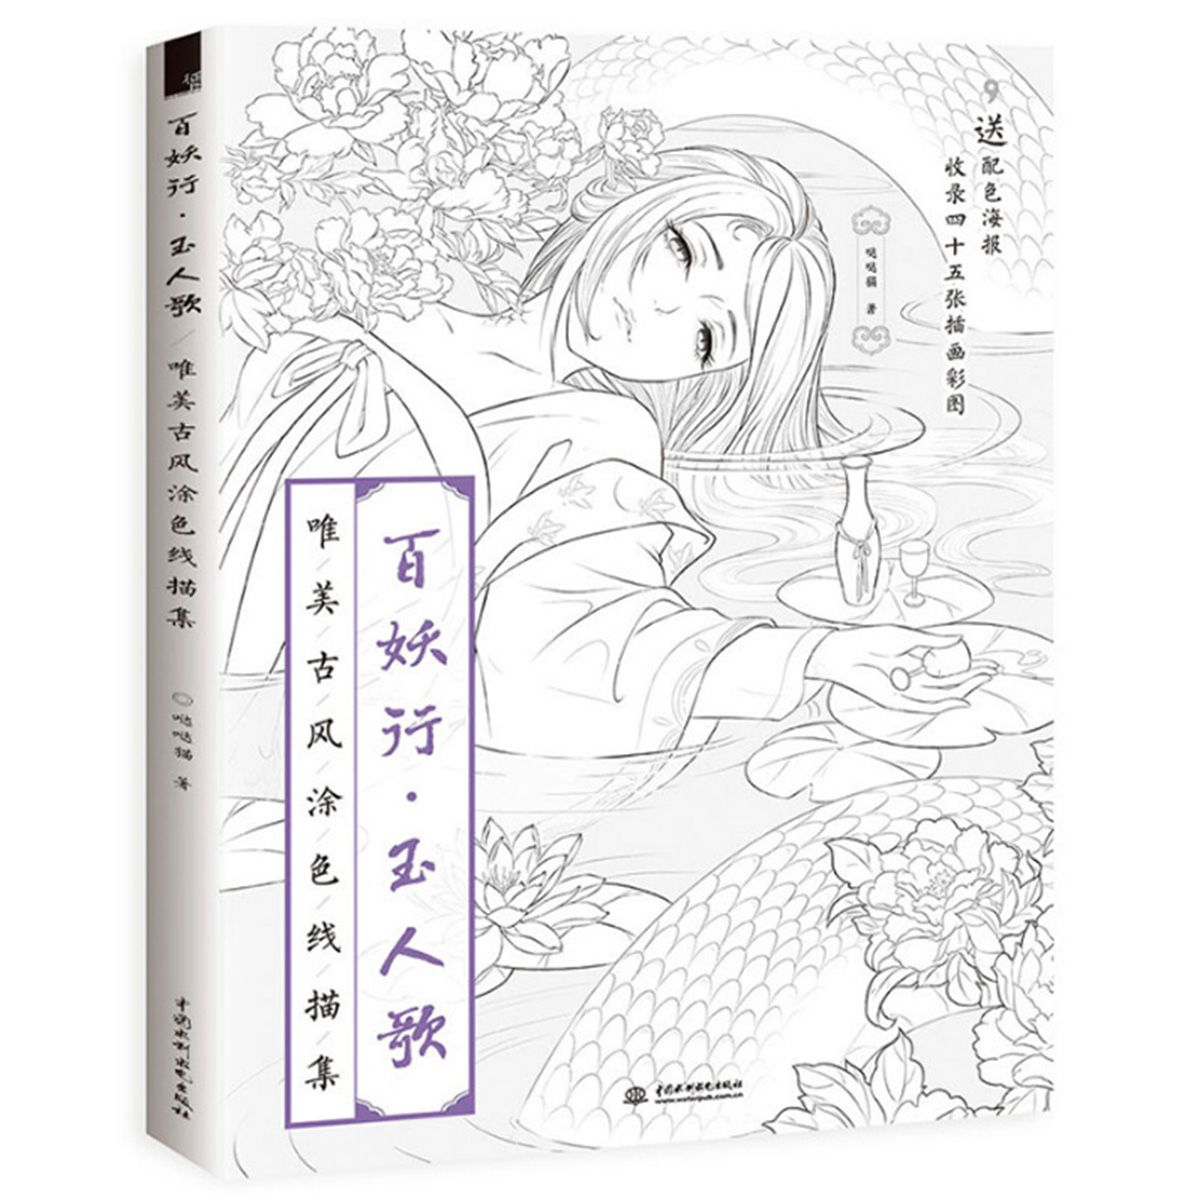 Chinese Coloring Books For Adults Kids Classical Comic Hand-painted Drawing Book Line Sketch Drawing Textbook Relax Stress